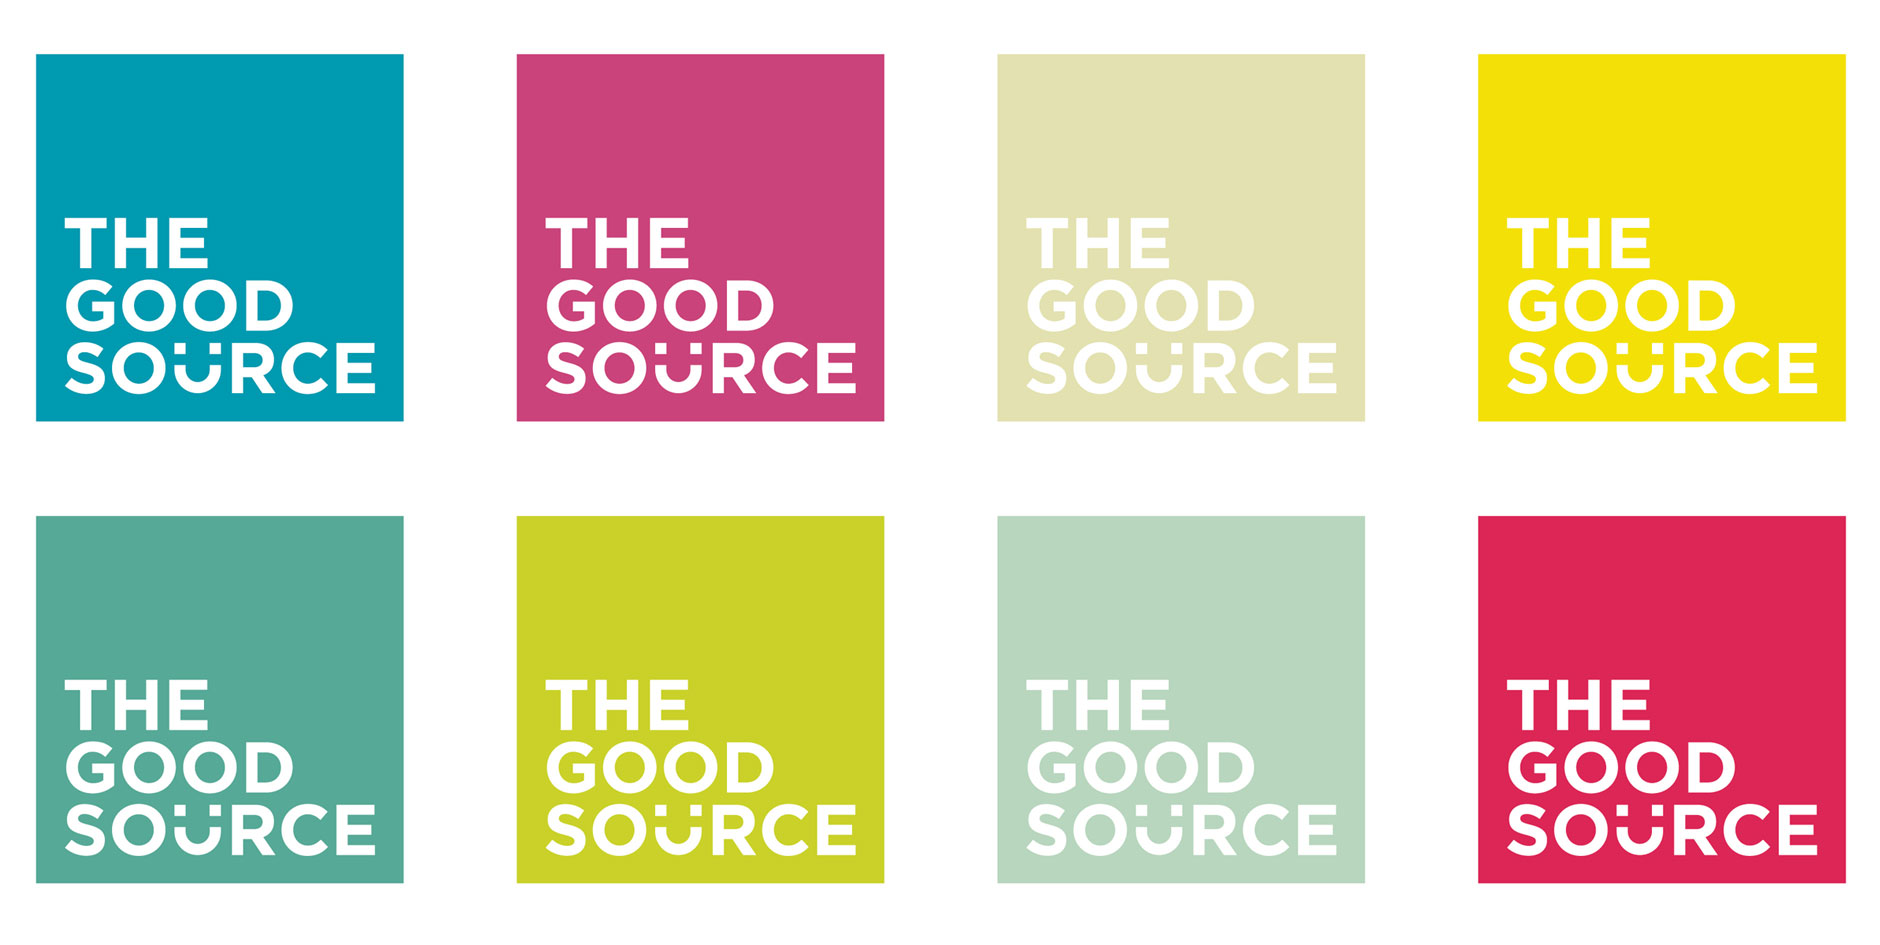 The Good Source